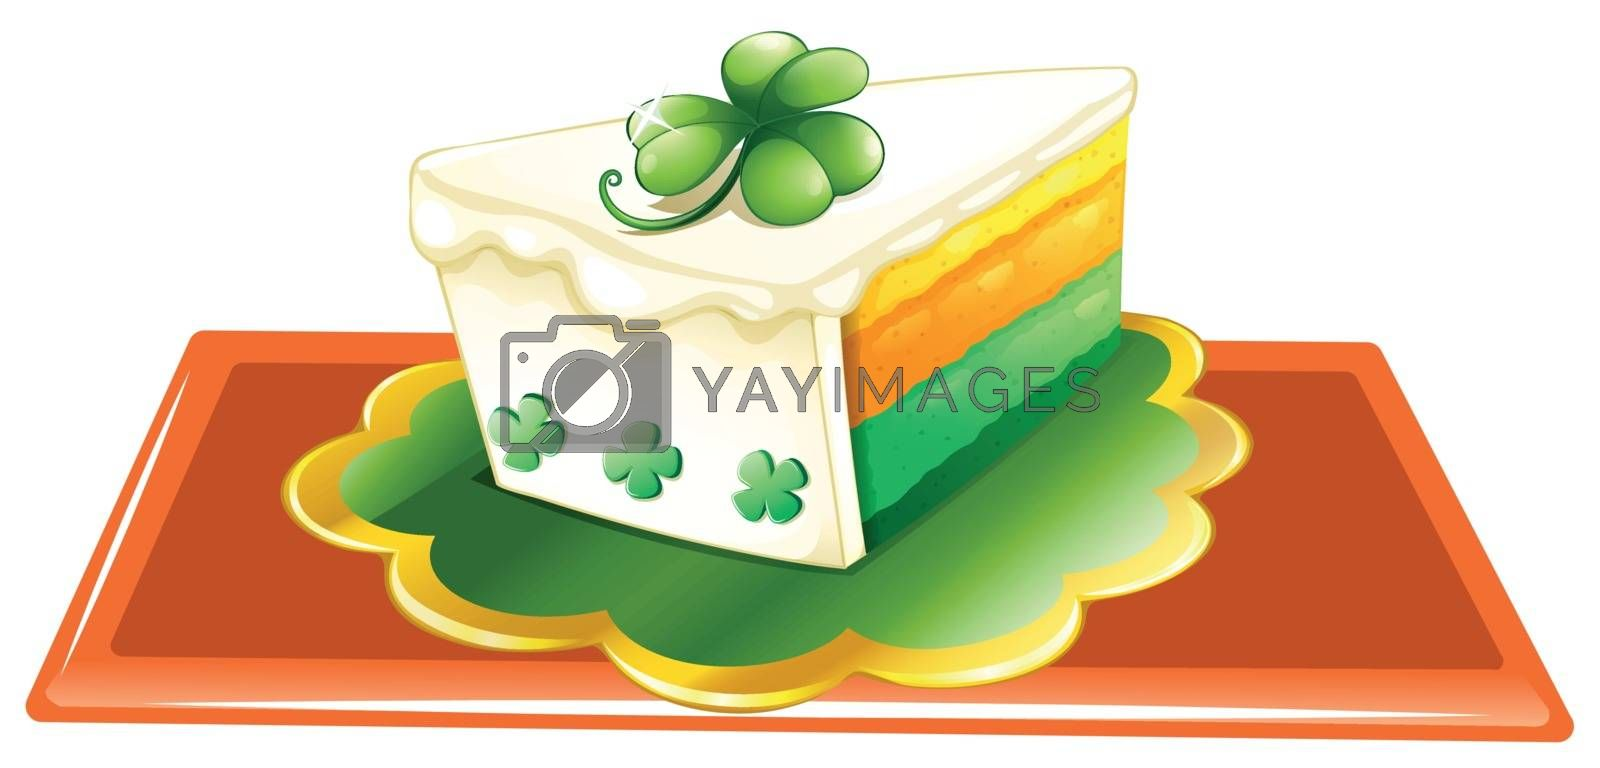 Illustration of a slice of cake for the celebration of St. Patrick's day on a white background